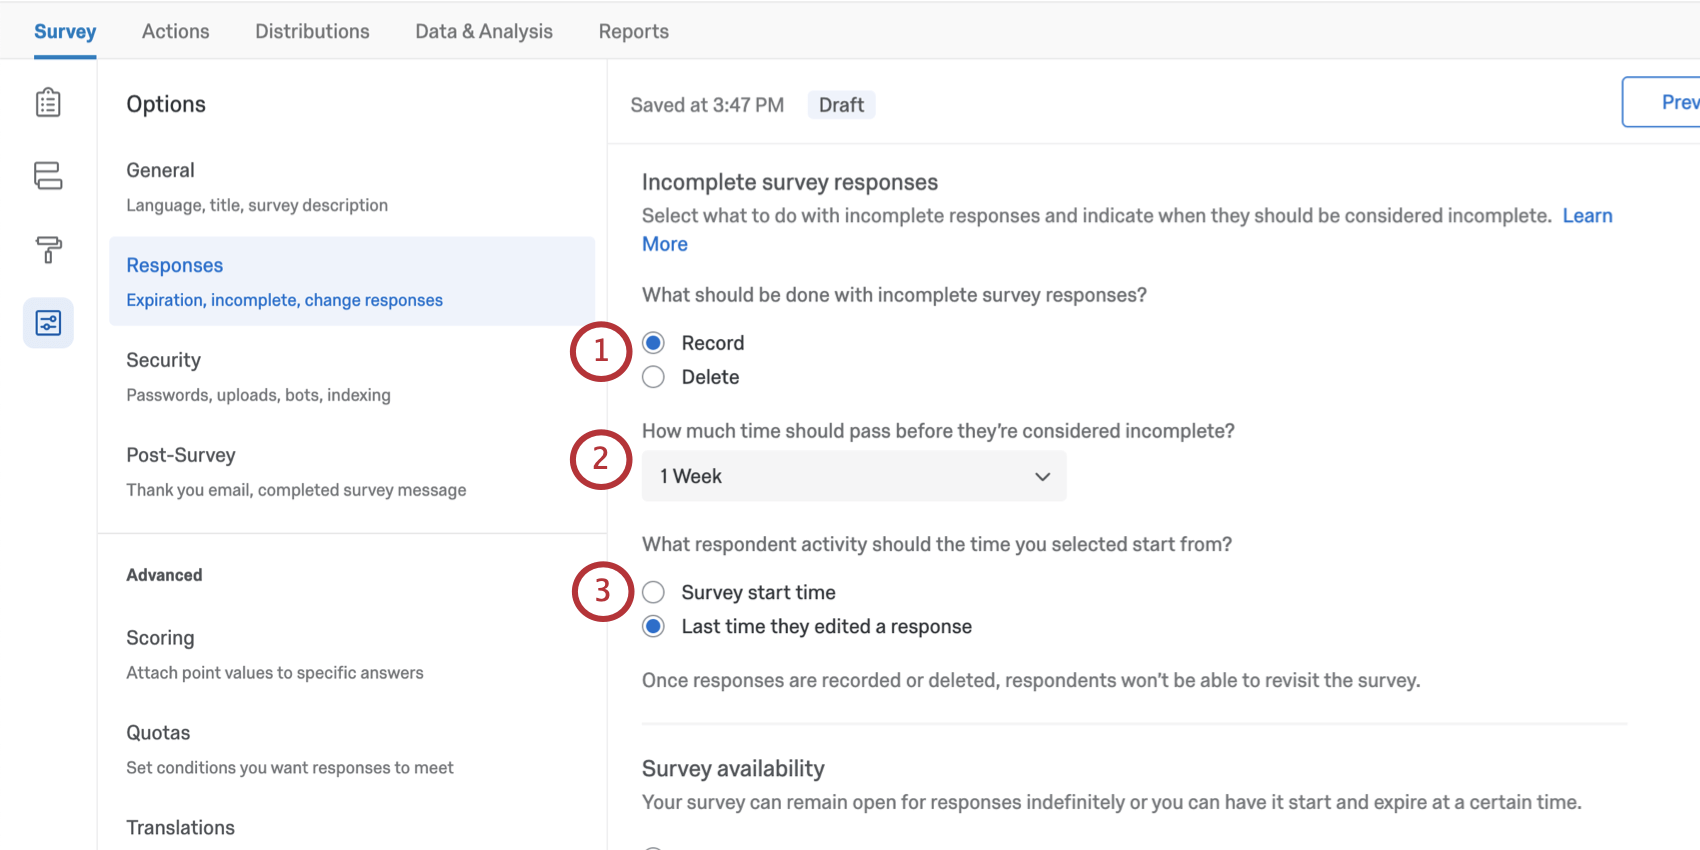 Incomplete survey responses isn't just a toggle, but has several options to configure, described below